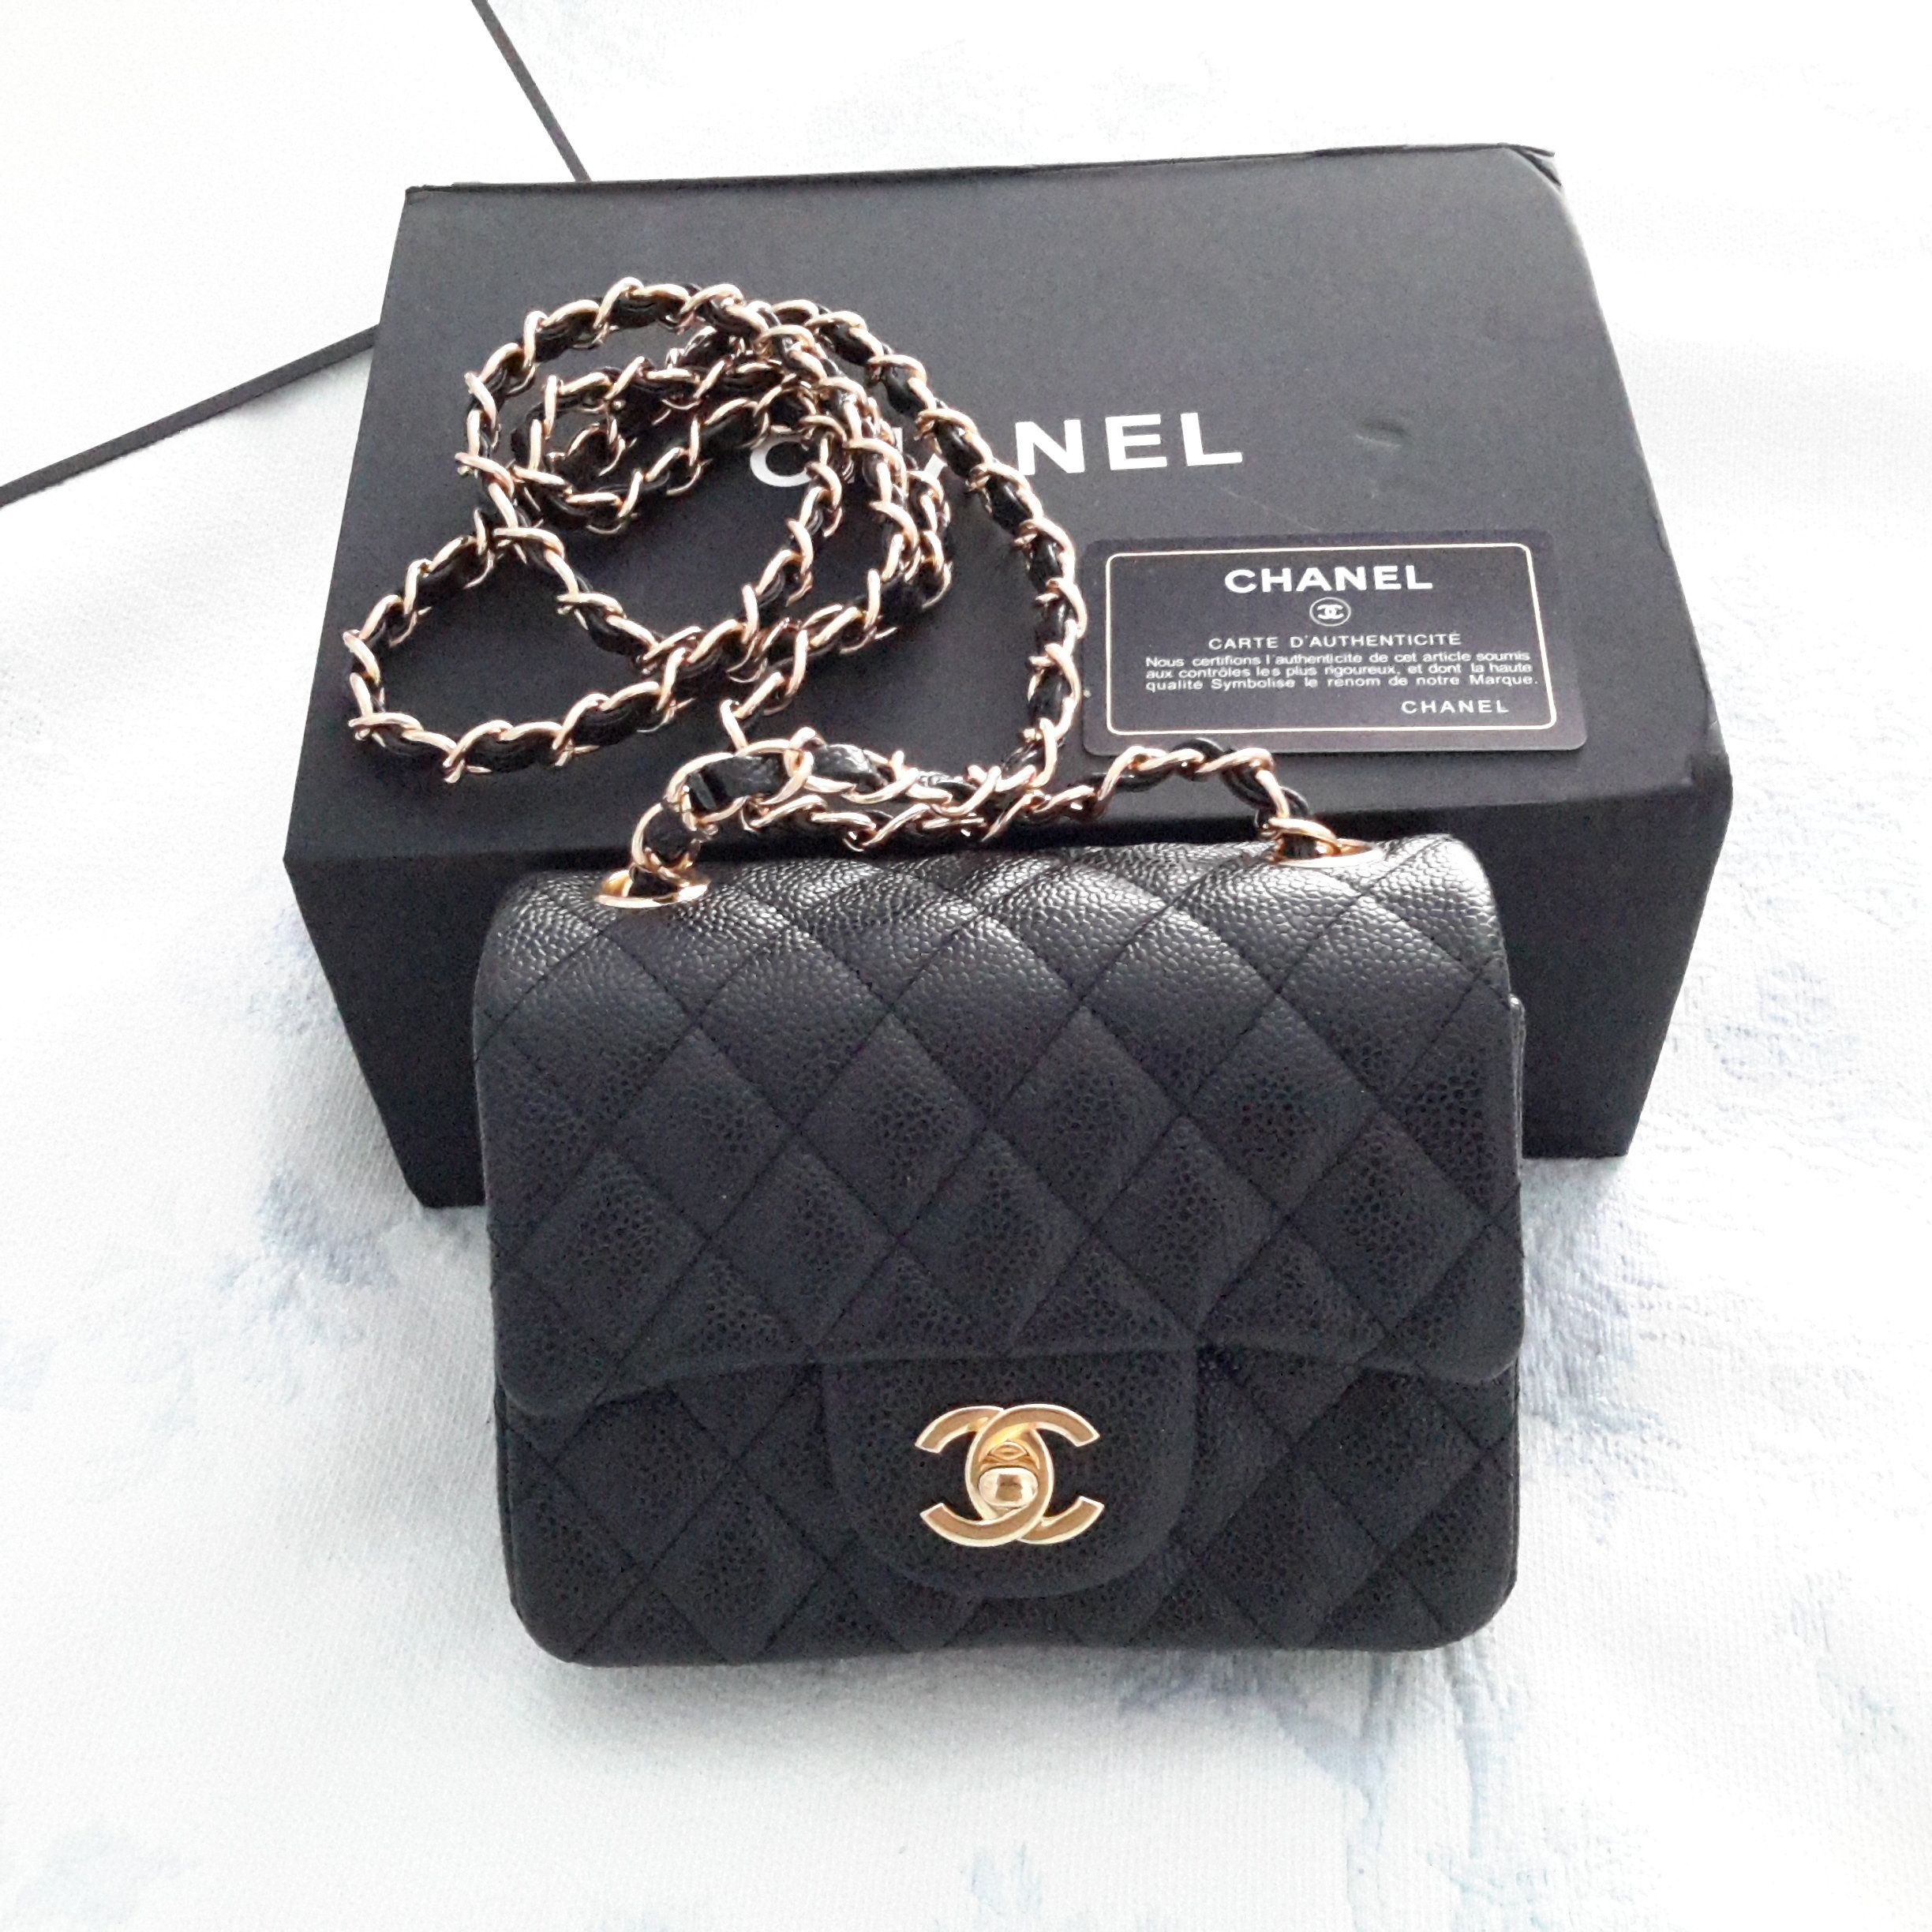 Authentic Chanel Classic Mini Flapbag In Black Caviar With Ghw Chanel Mini Square Chanel Flap Bag